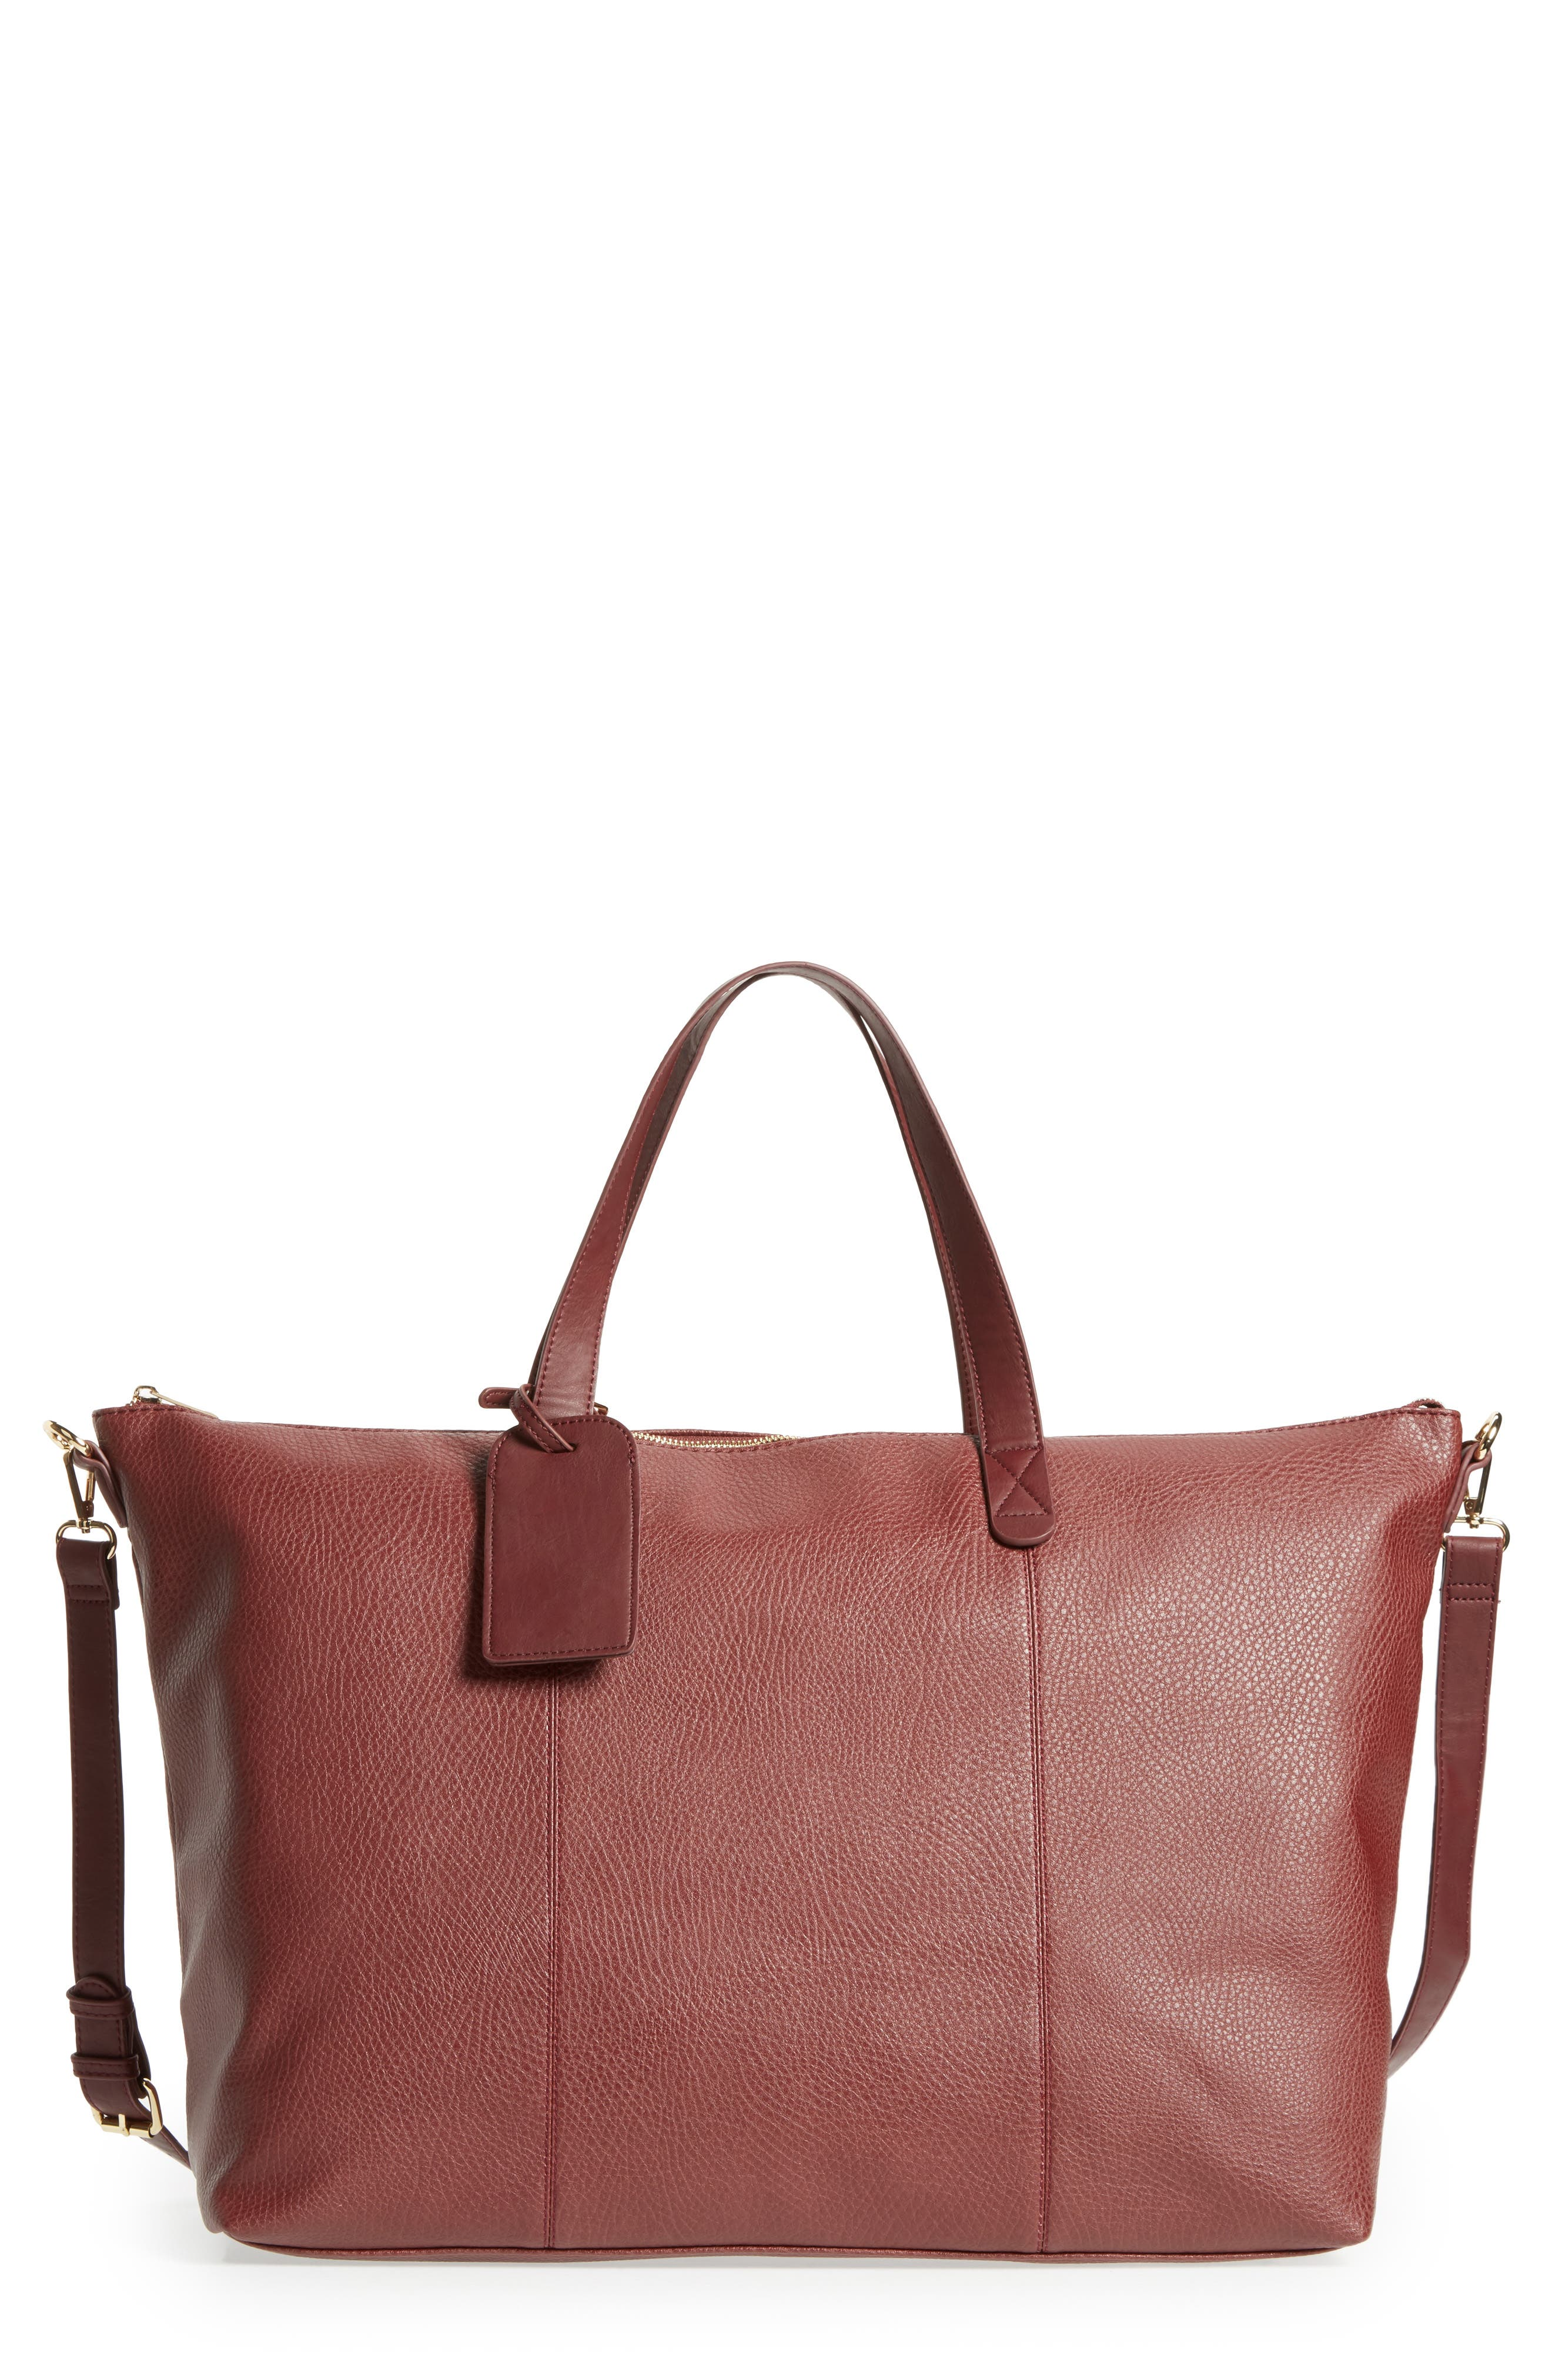 Candice Oversize Travel Tote,                         Main,                         color, Oxblood